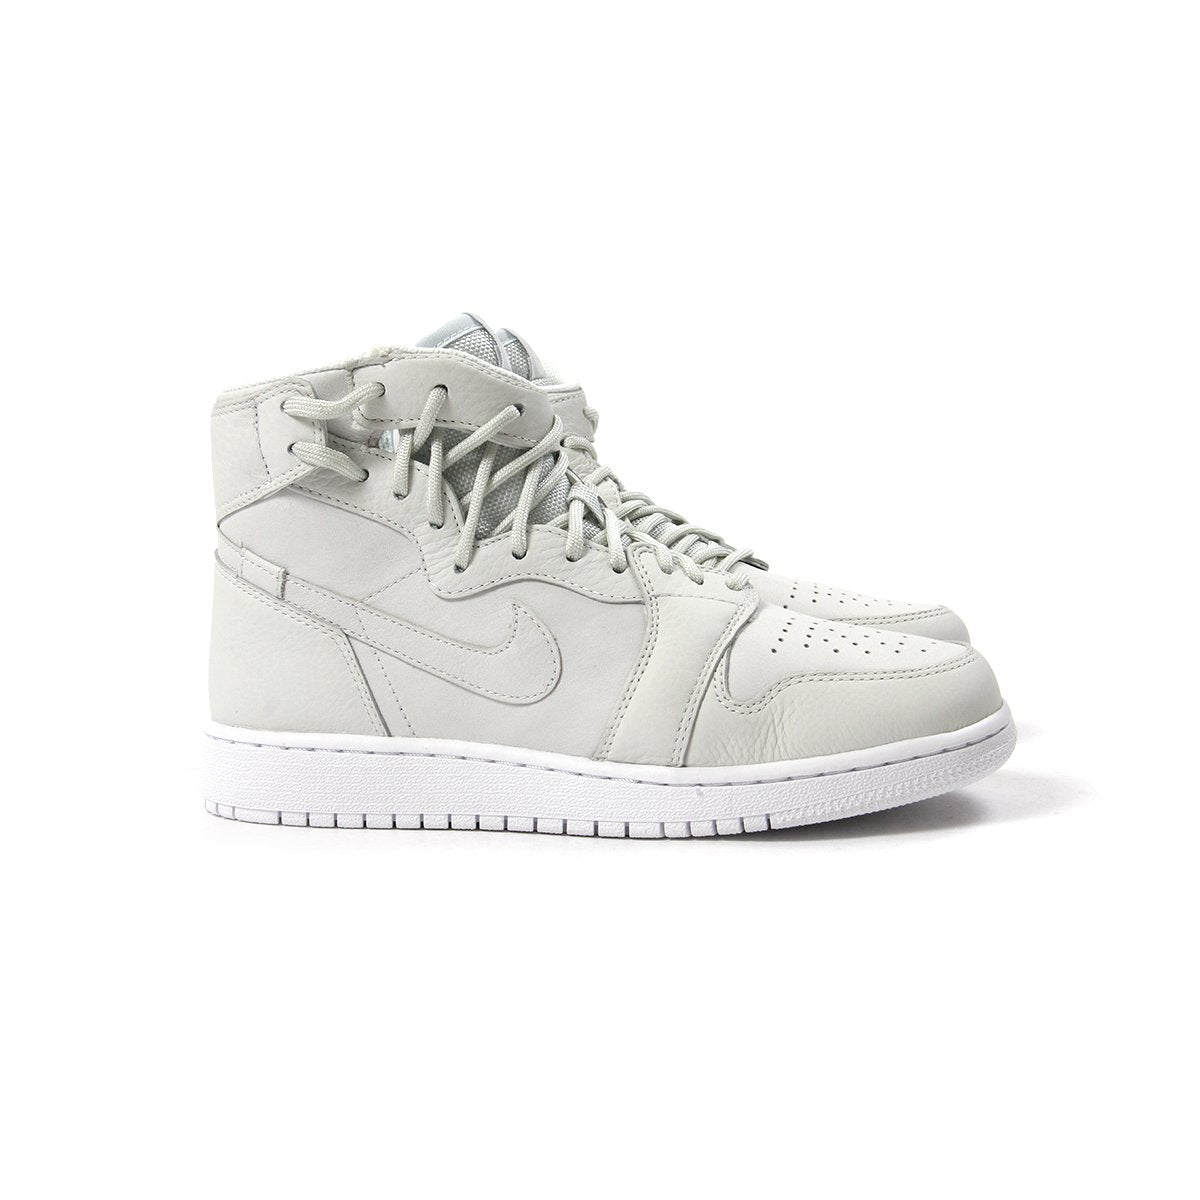 buy popular c912b 93a21 ConceptsIntl | Nike Jordan Womens AJ1 Rebel XX (Off White ...